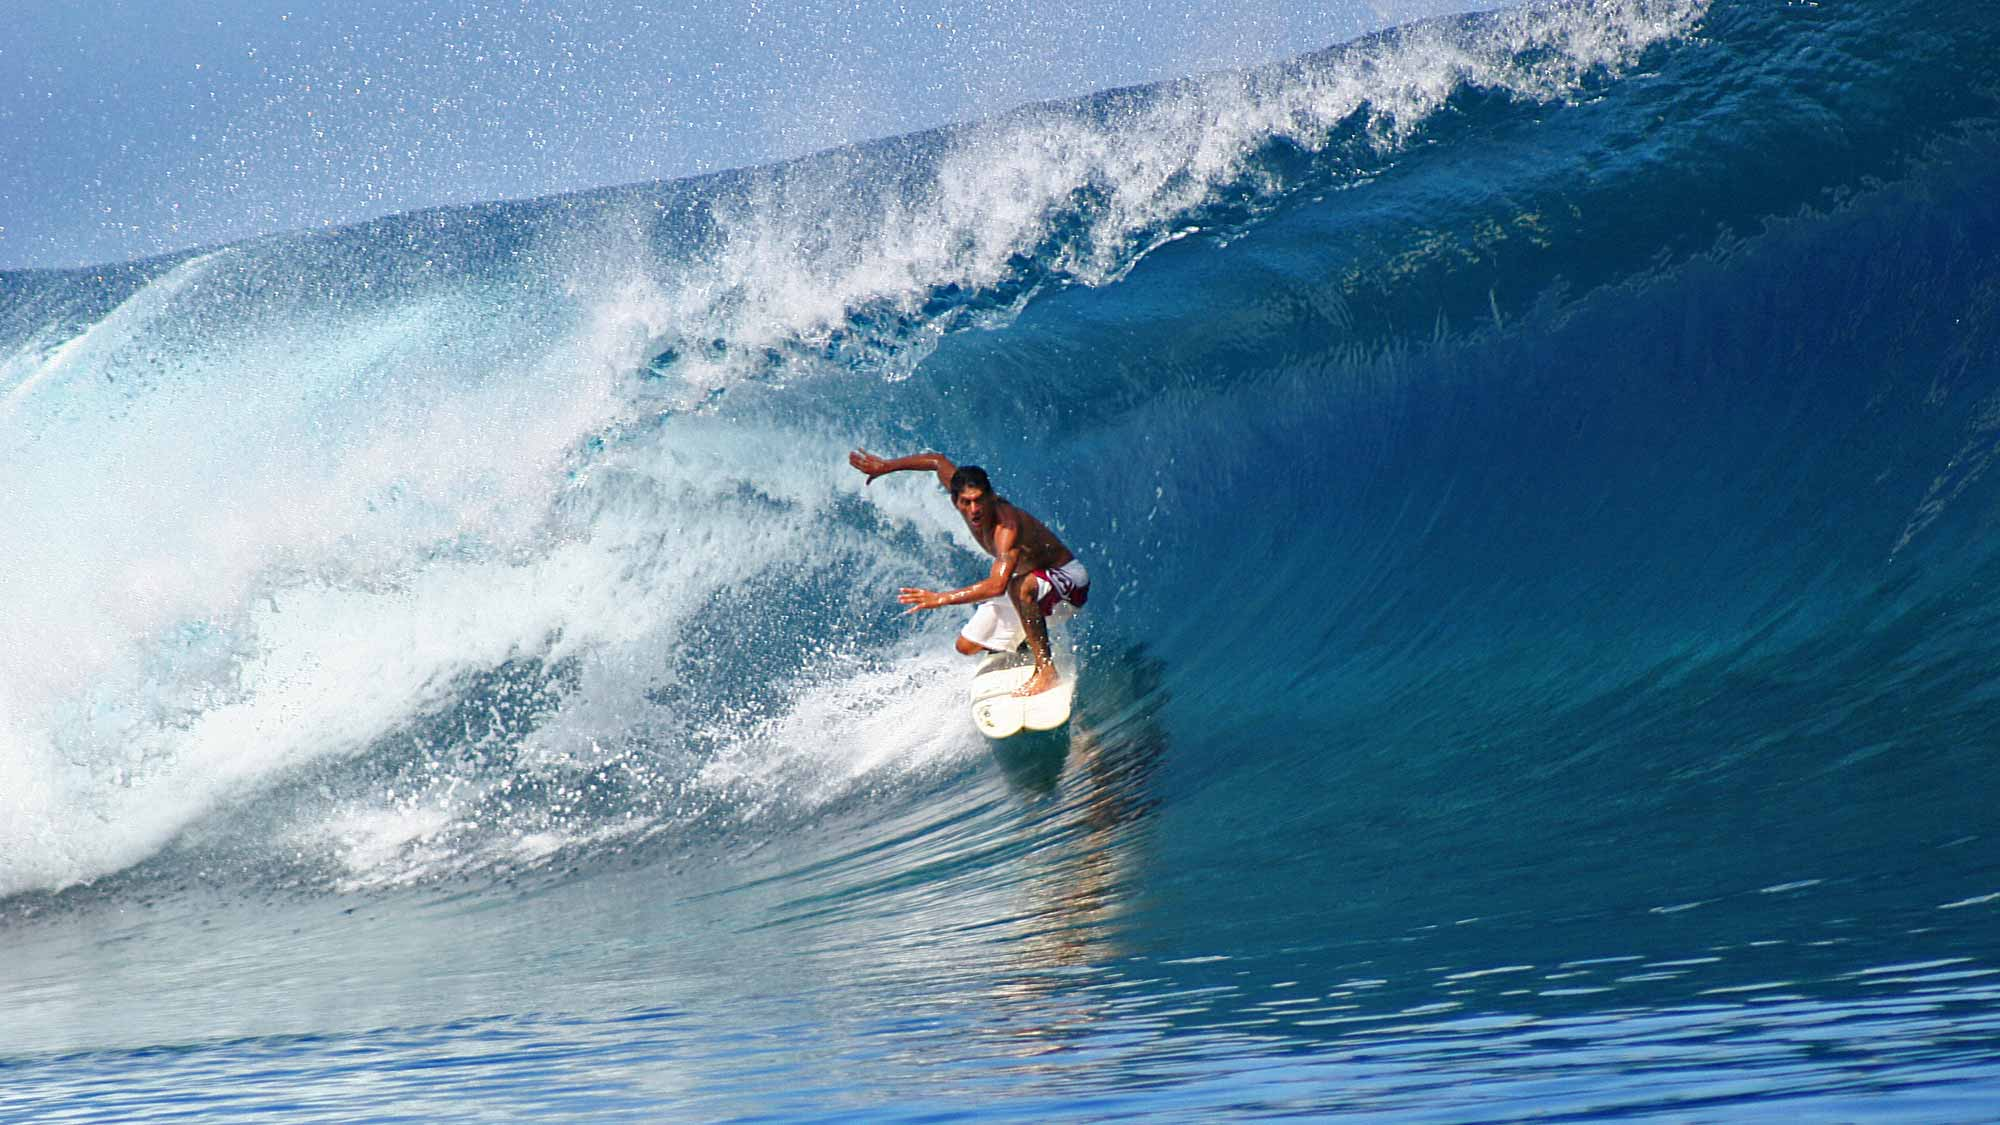 surfer-perfect-wave-teahupoo-tahiti-featured-1